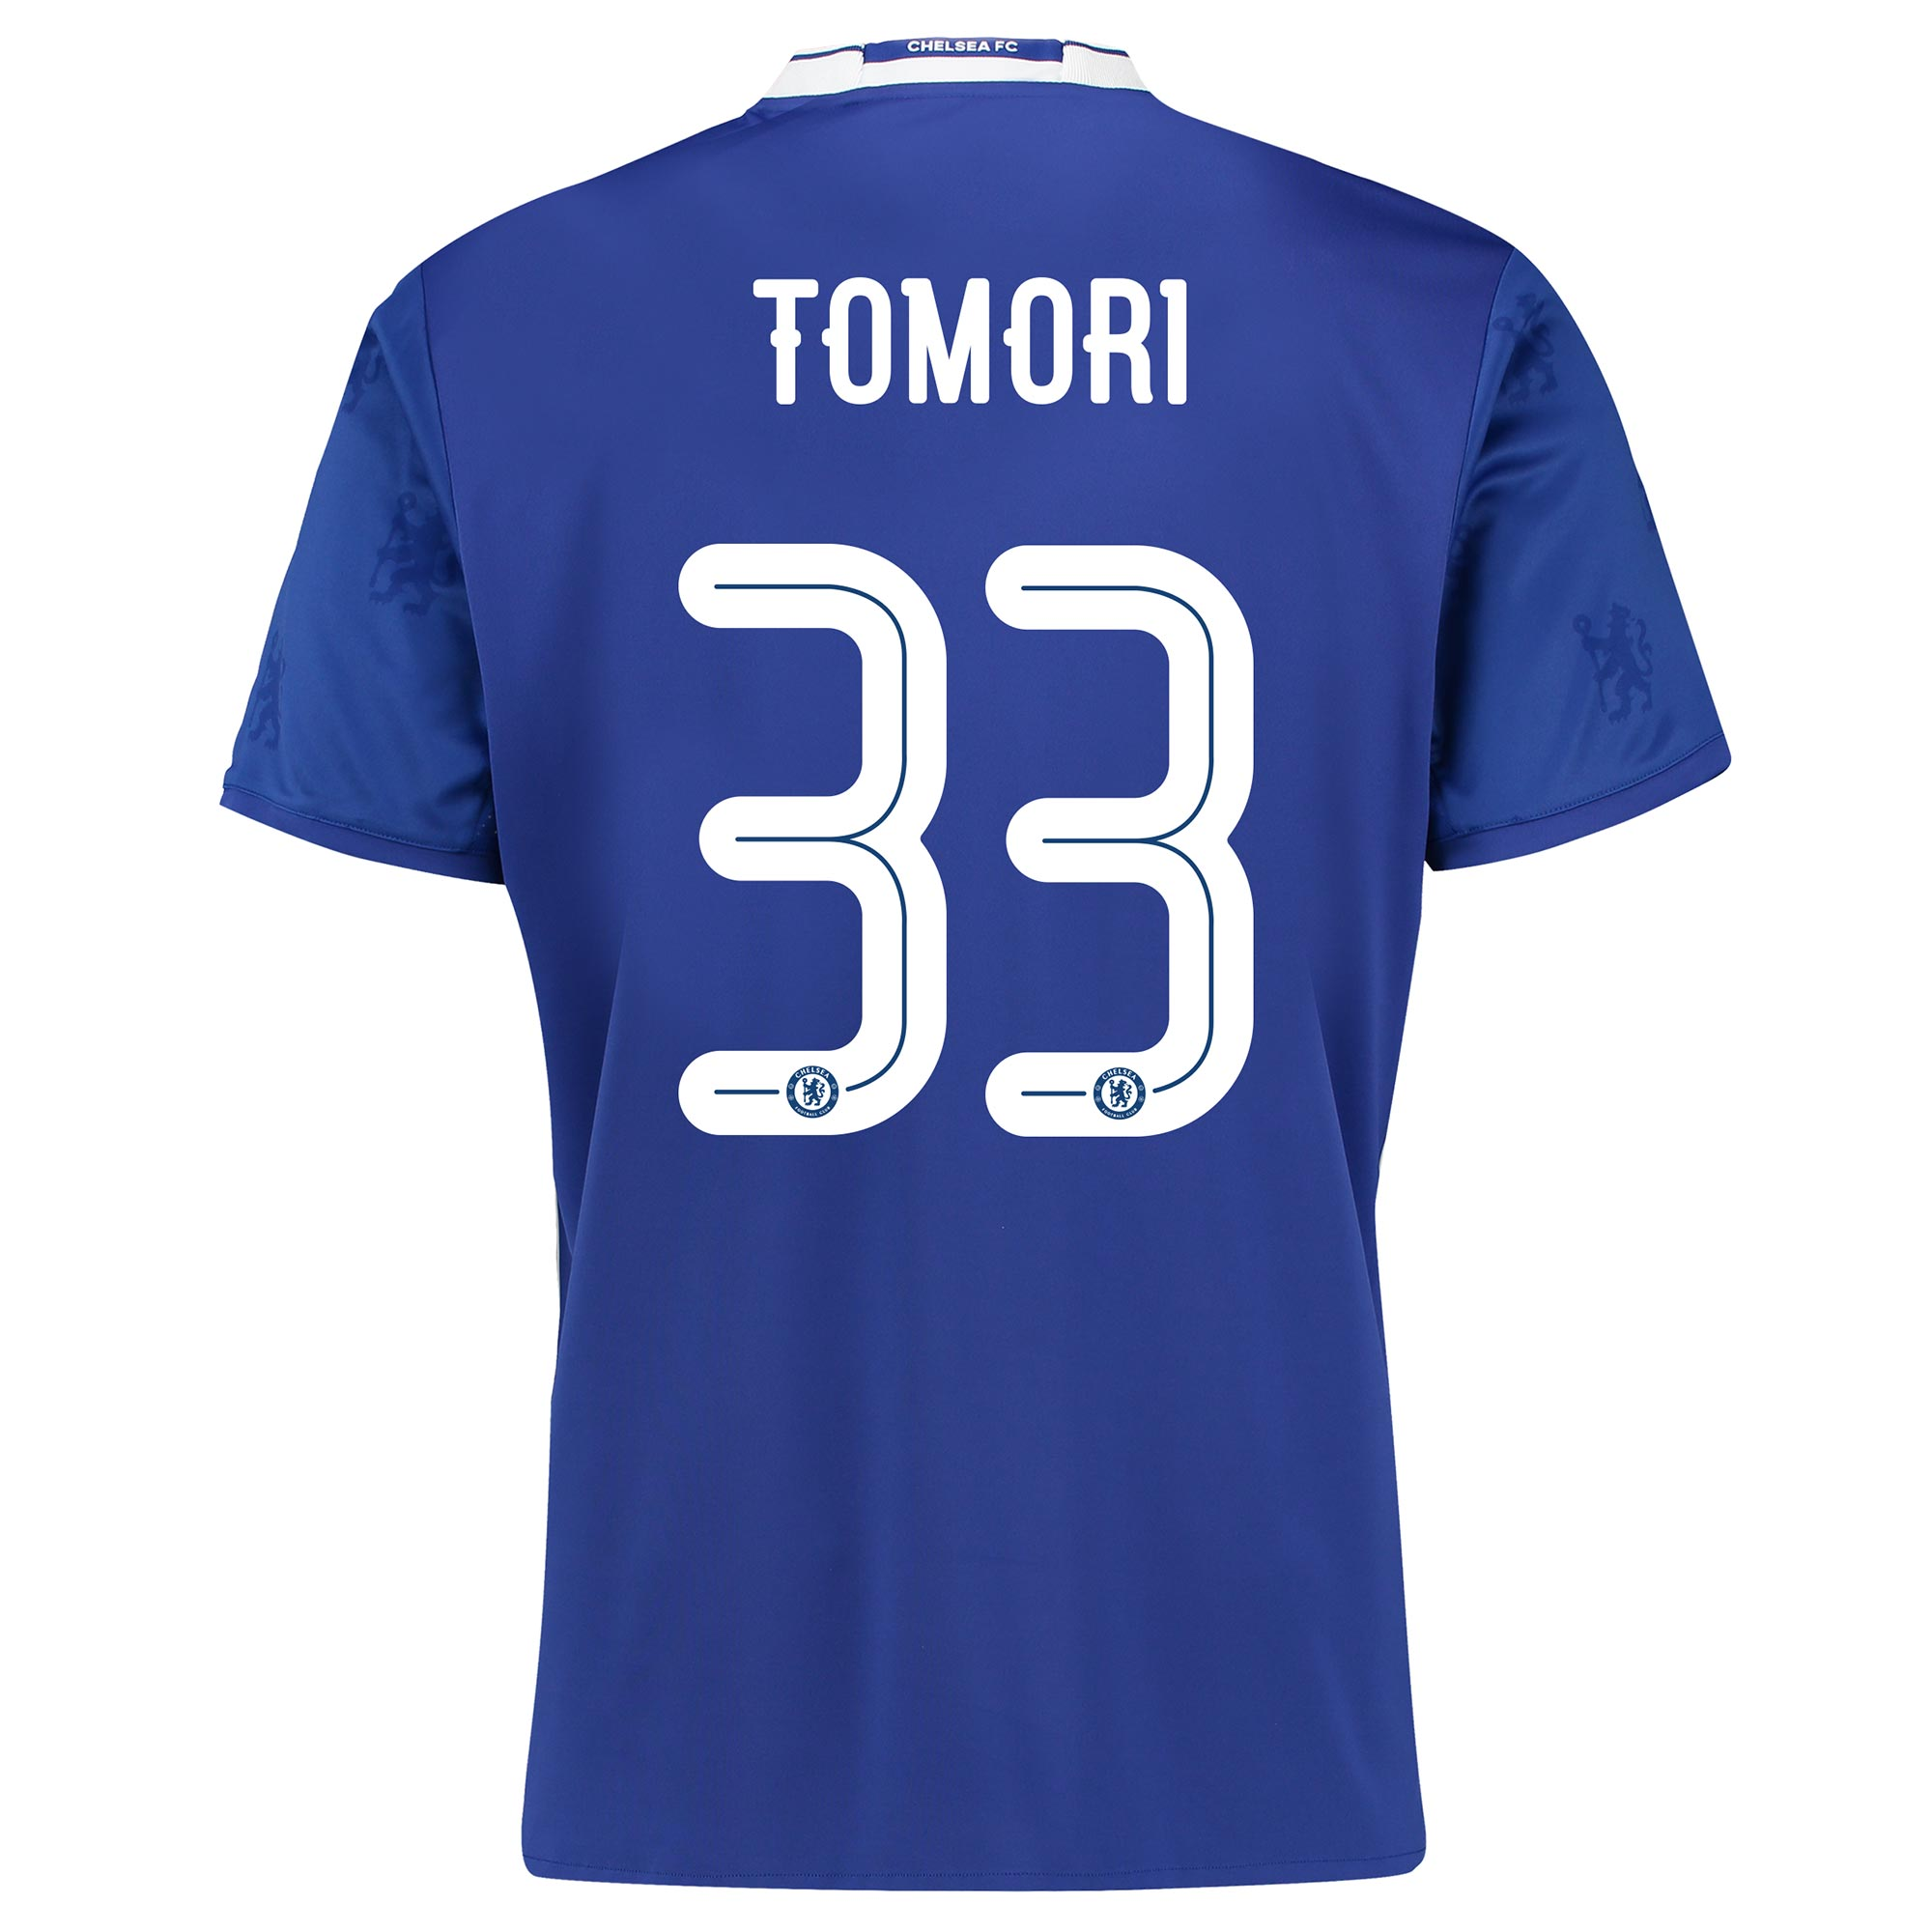 Chelsea Linear Home Shirt 2016-17 with Tomori 33 printing